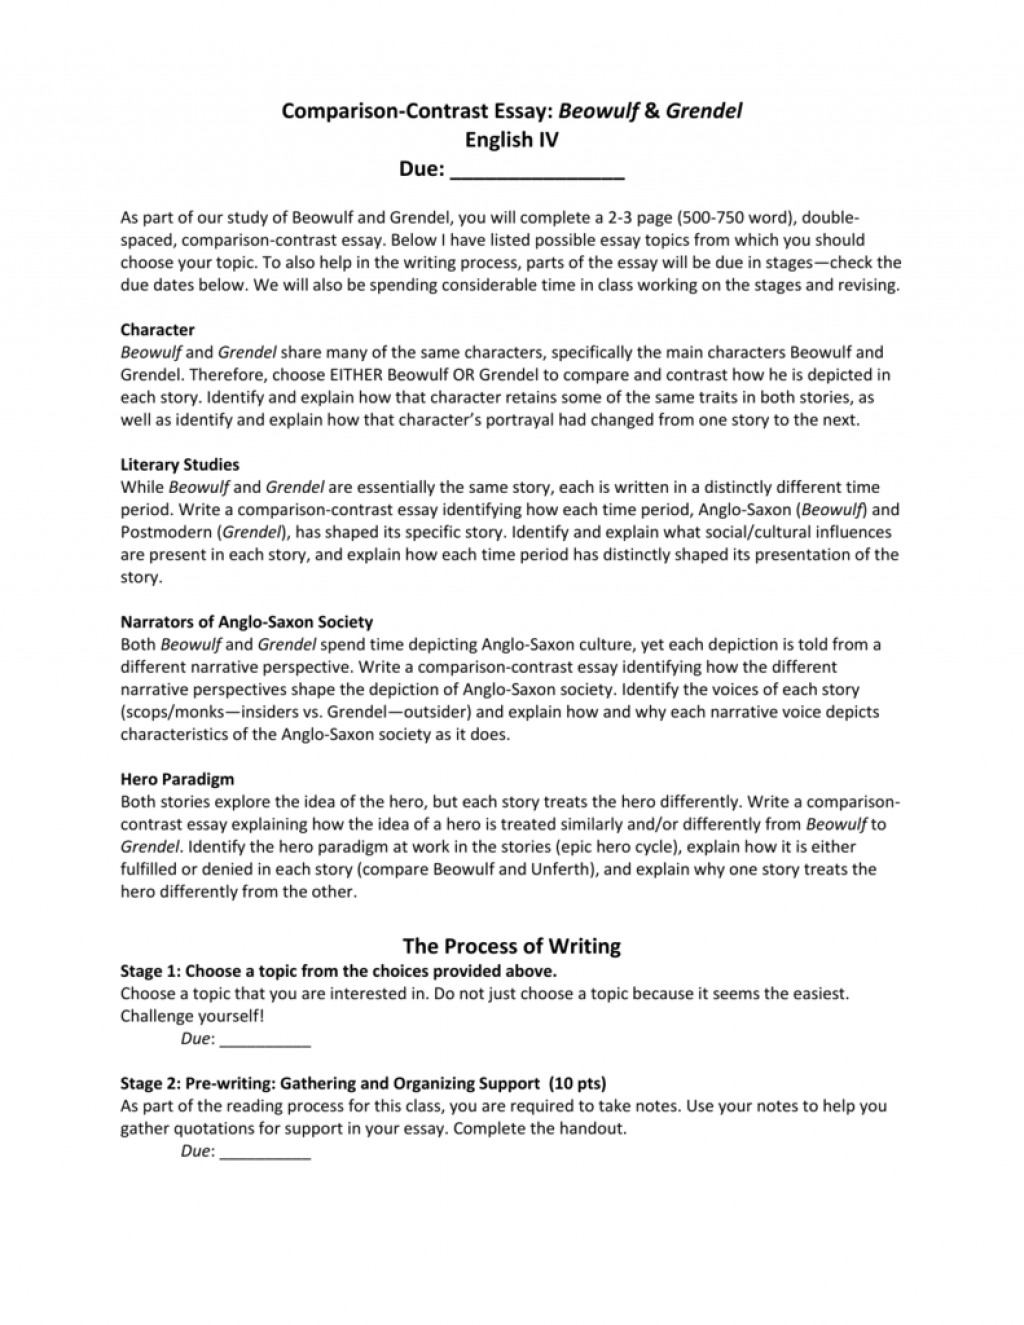 015 008061732 1 Contrast Essay Fantastic Words Compare Outline Middle School Topics High Large